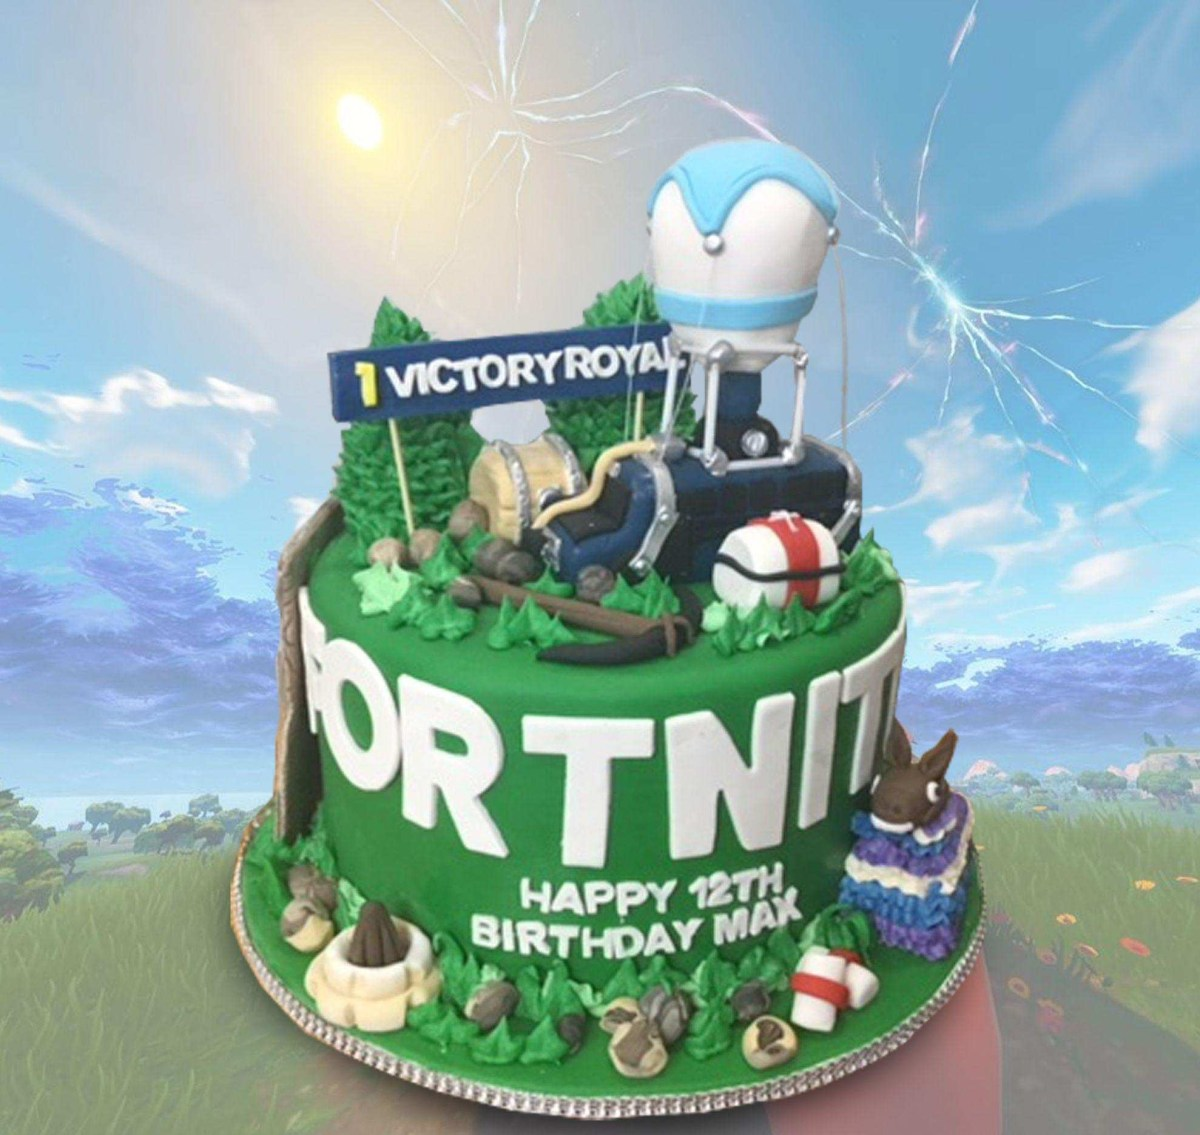 Remarkable Pinterest Birthday Cakes Birthday Cake Template Printable Fortnite Funny Birthday Cards Online Elaedamsfinfo